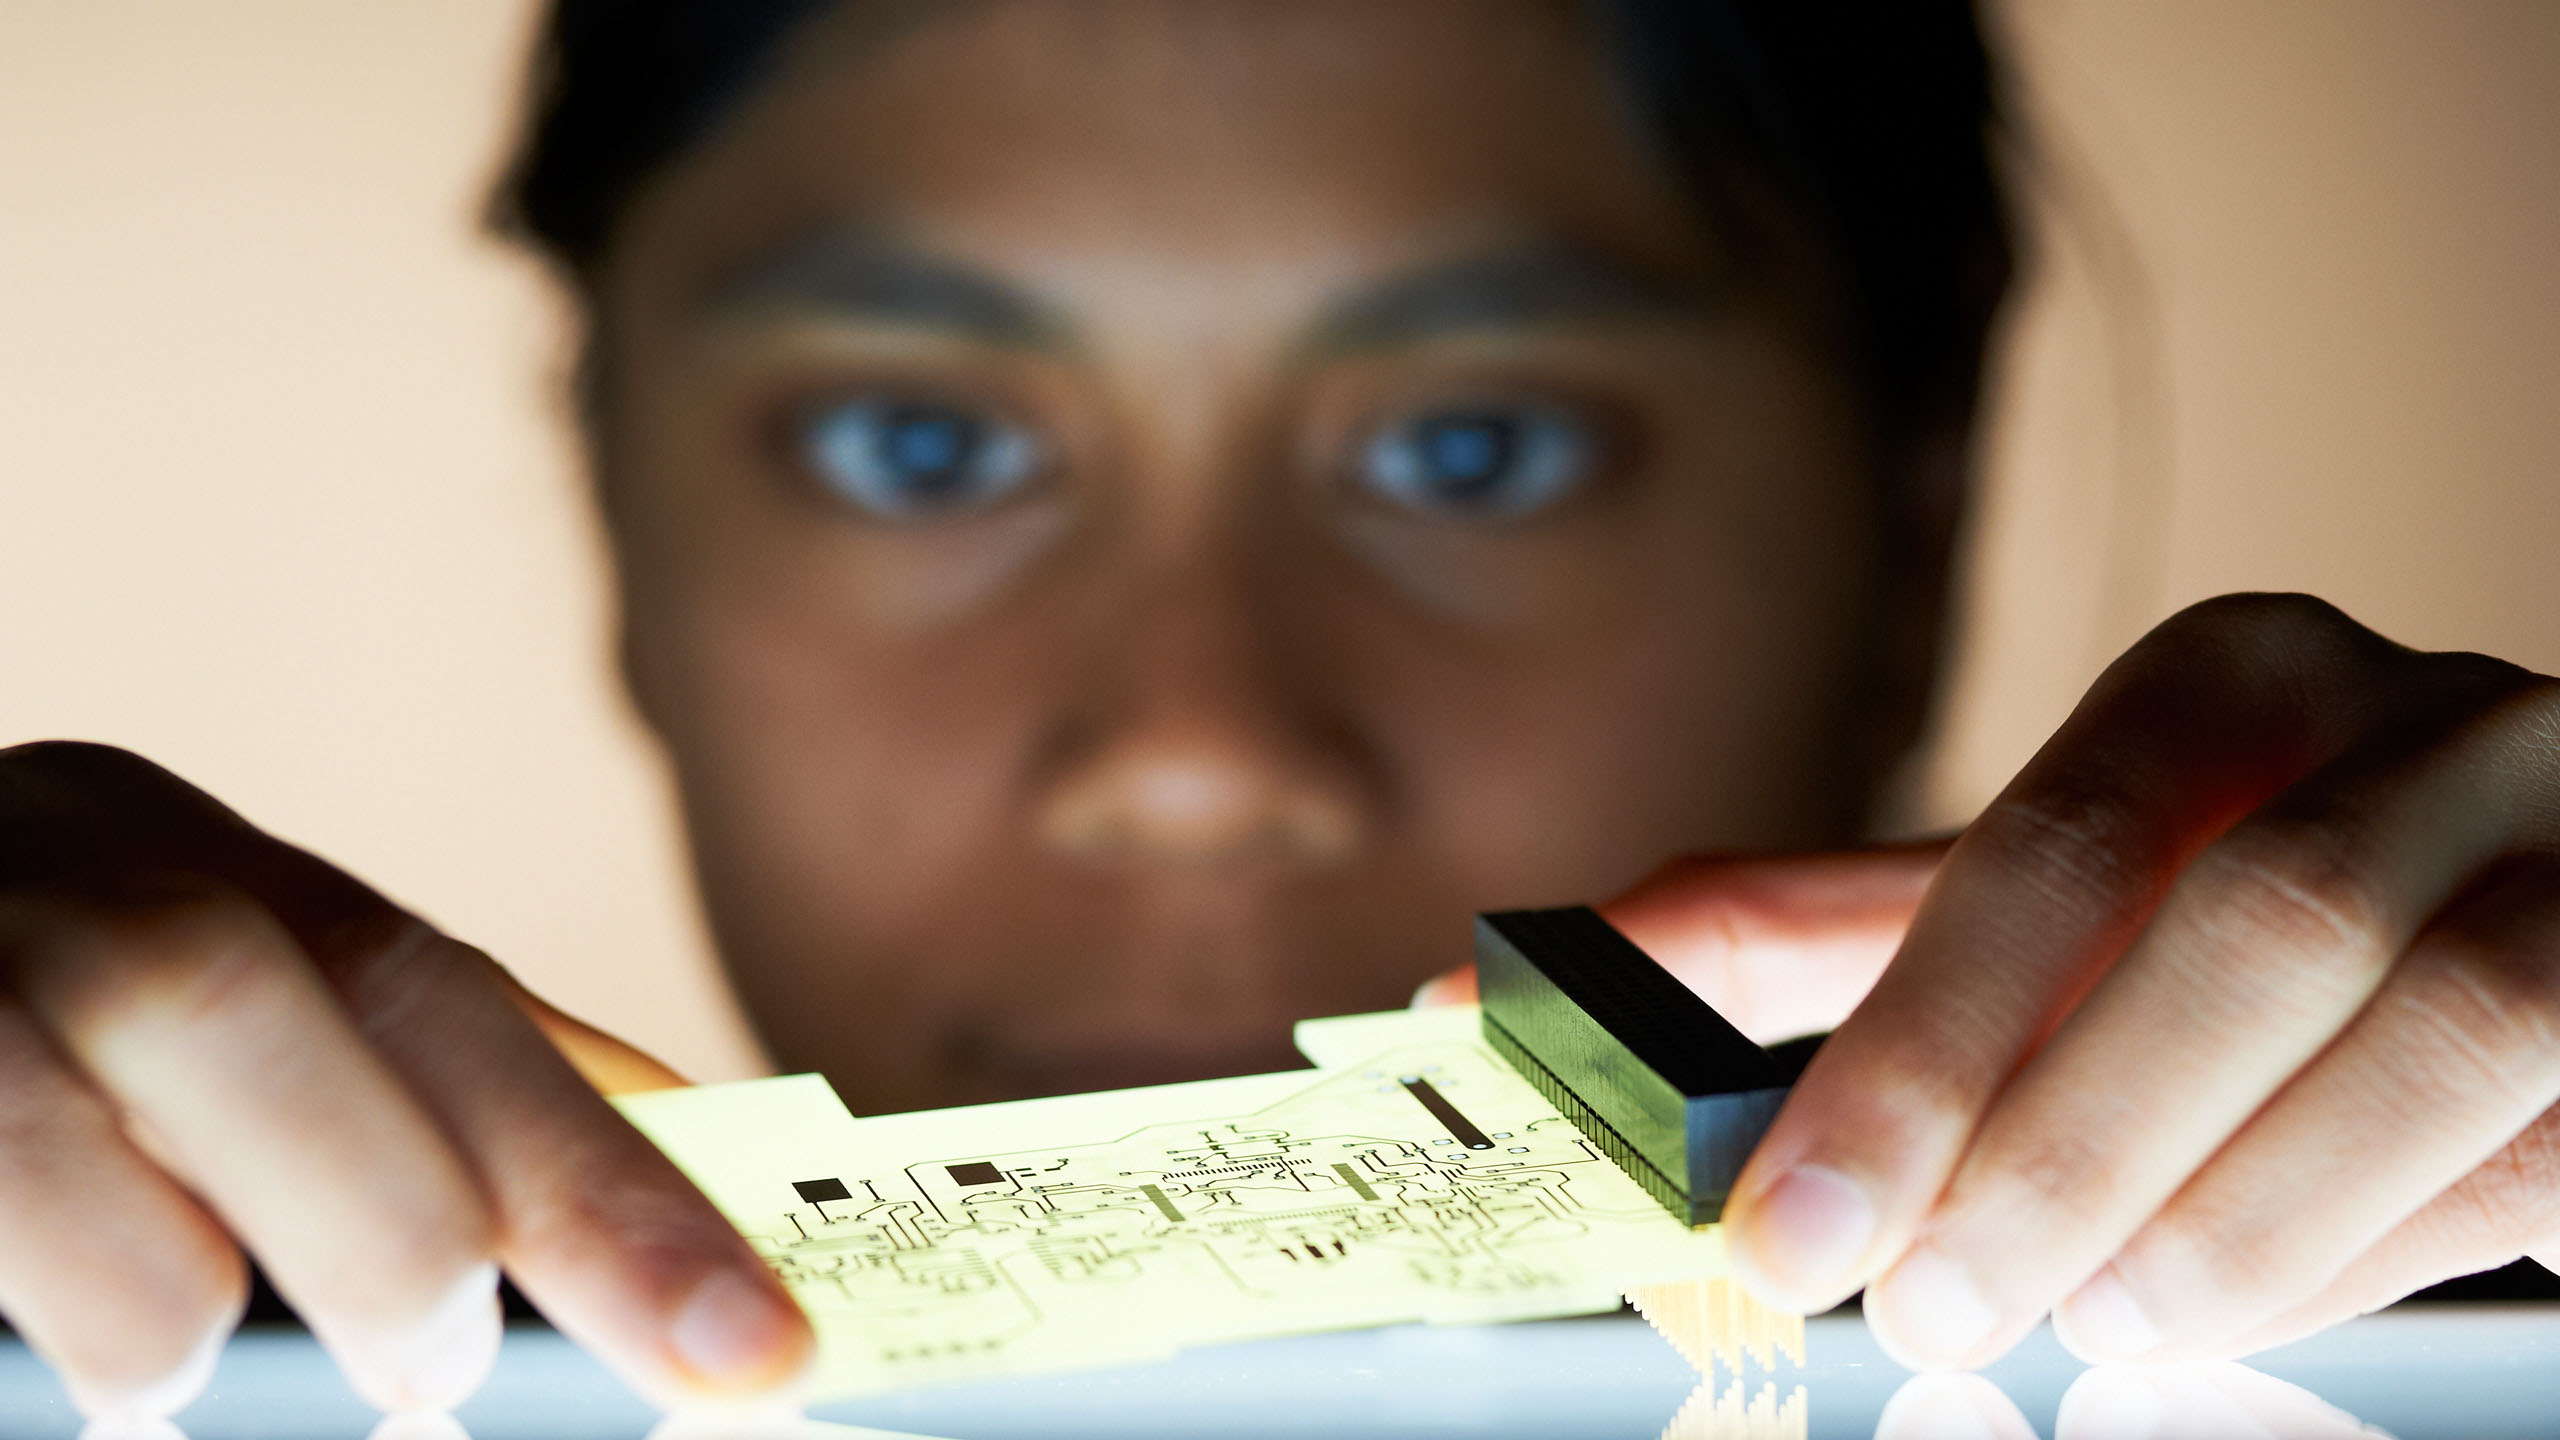 A close up of a student holding a circuit board